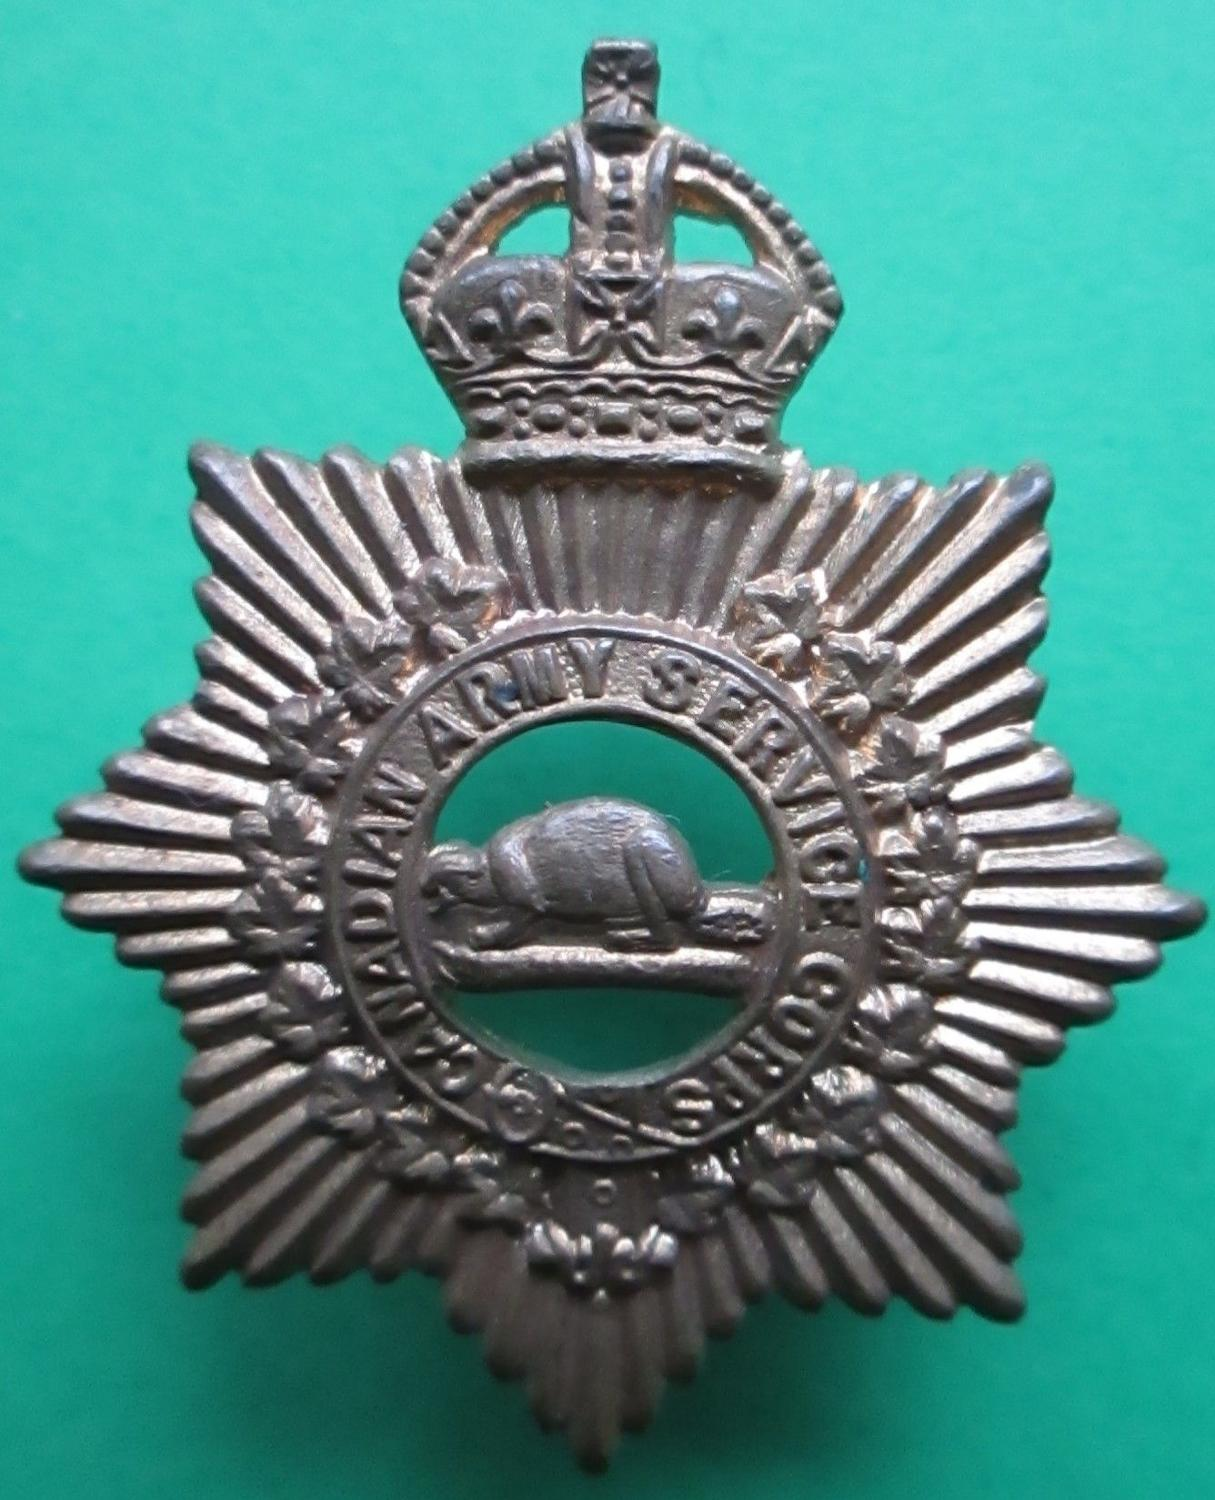 A COLLAR BADGE FOR THE CANADIAN ARMY SERVICE CORPS